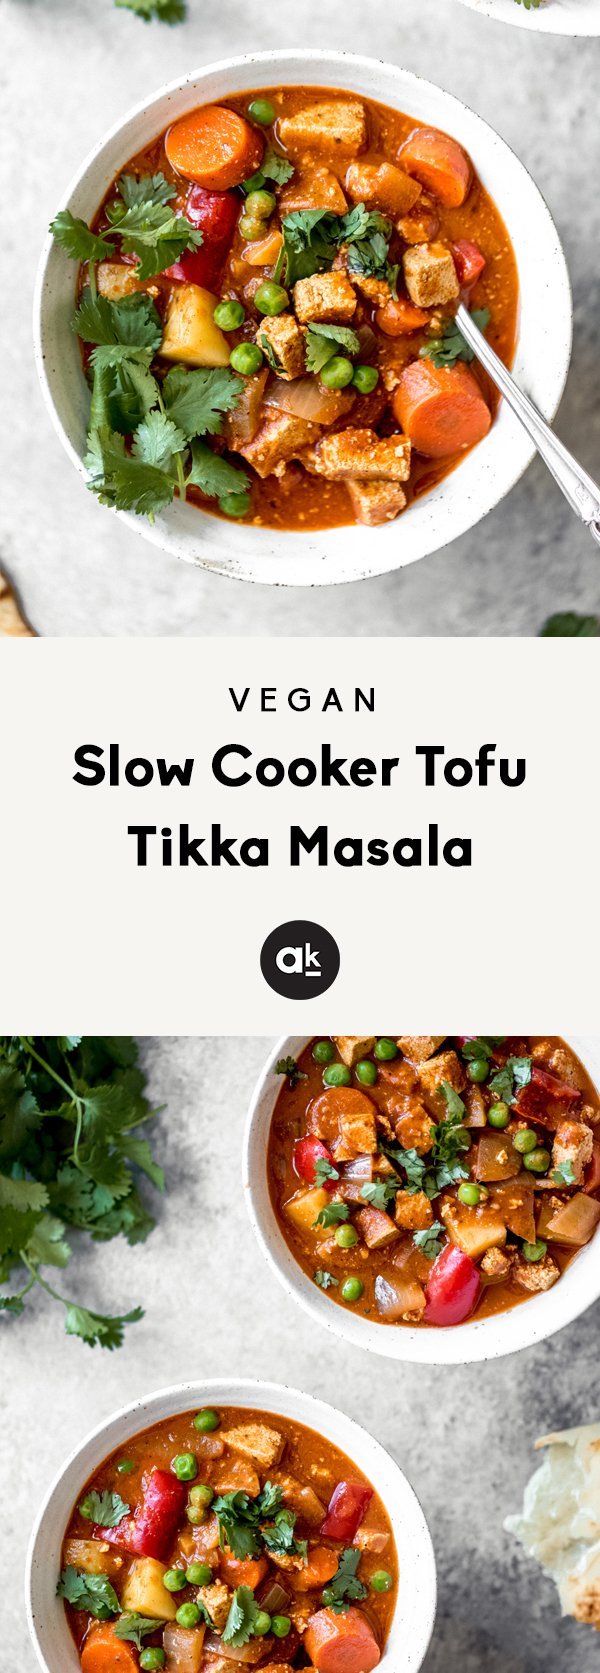 This unbelievably nourishing vegan slow cooker tofu tikka masala has a hearty serving of veggies like carrots, bell pepper, cauliflower and potatoes! Makes a great recipe for crowds or to make for meal prep. Delicious with a side of naan bread for dipping.